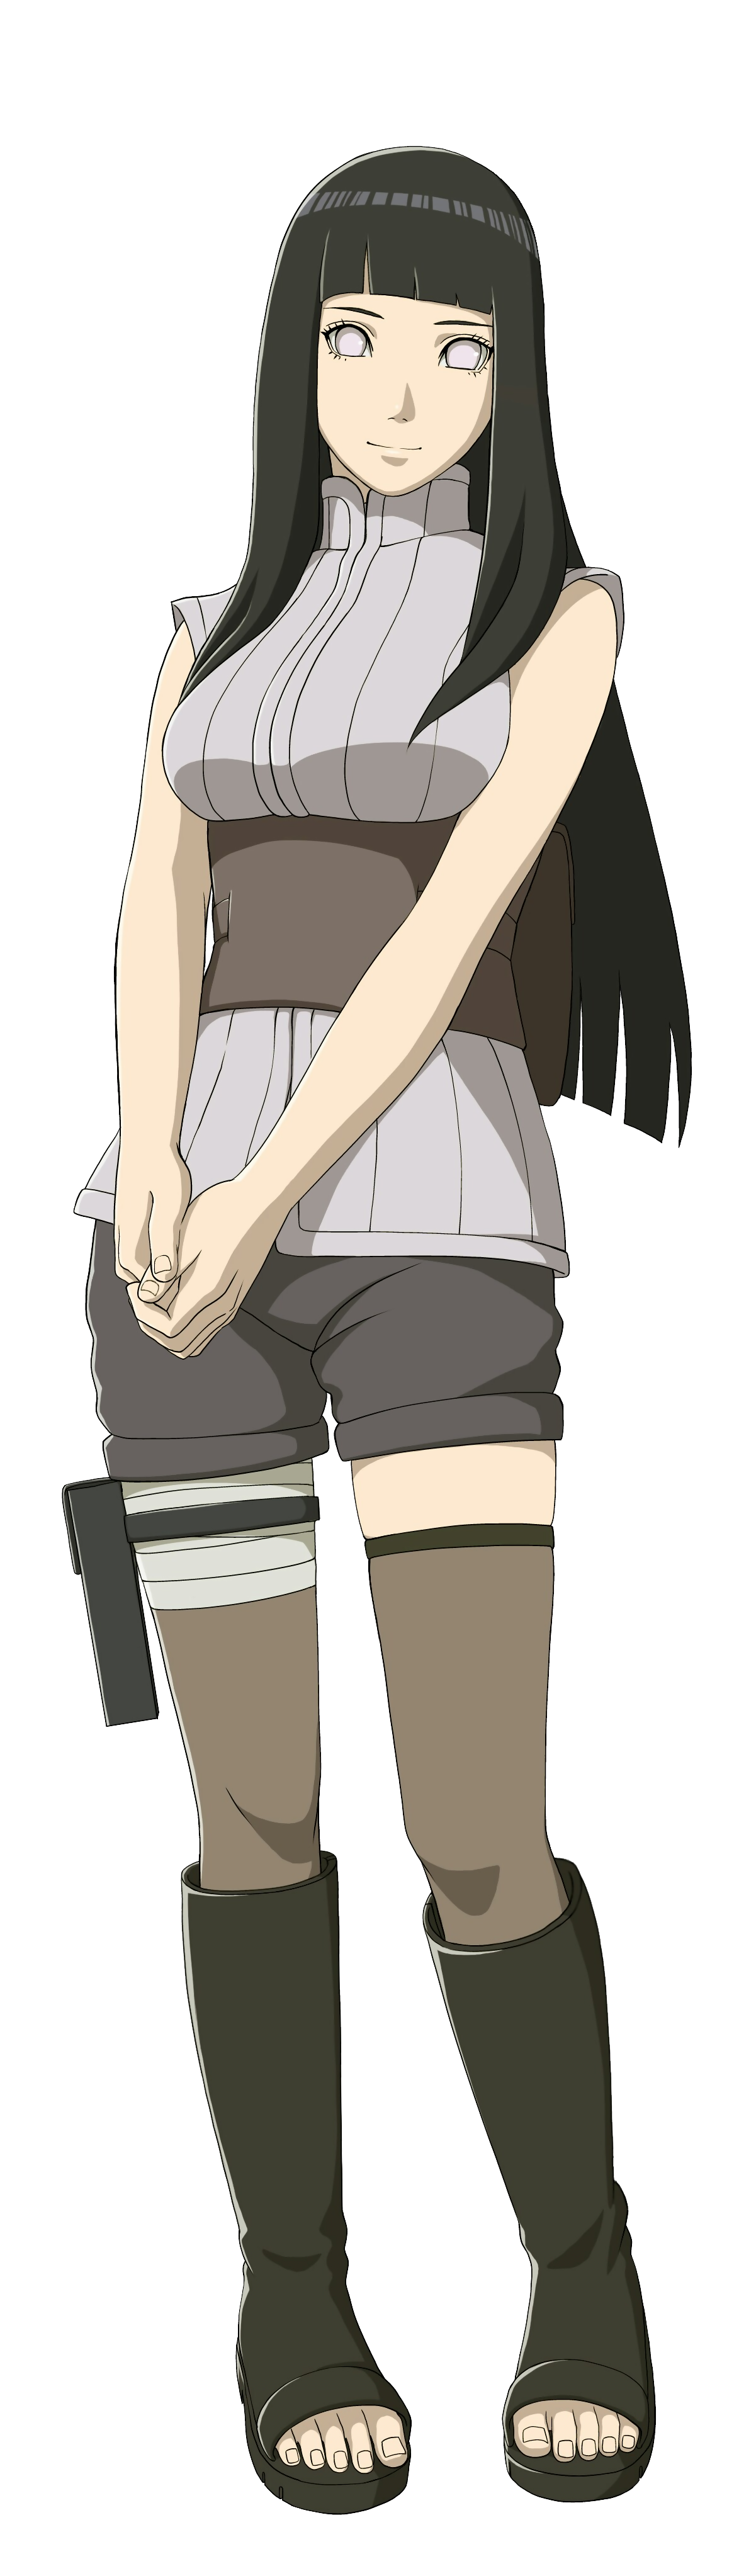 hinata transparent poses